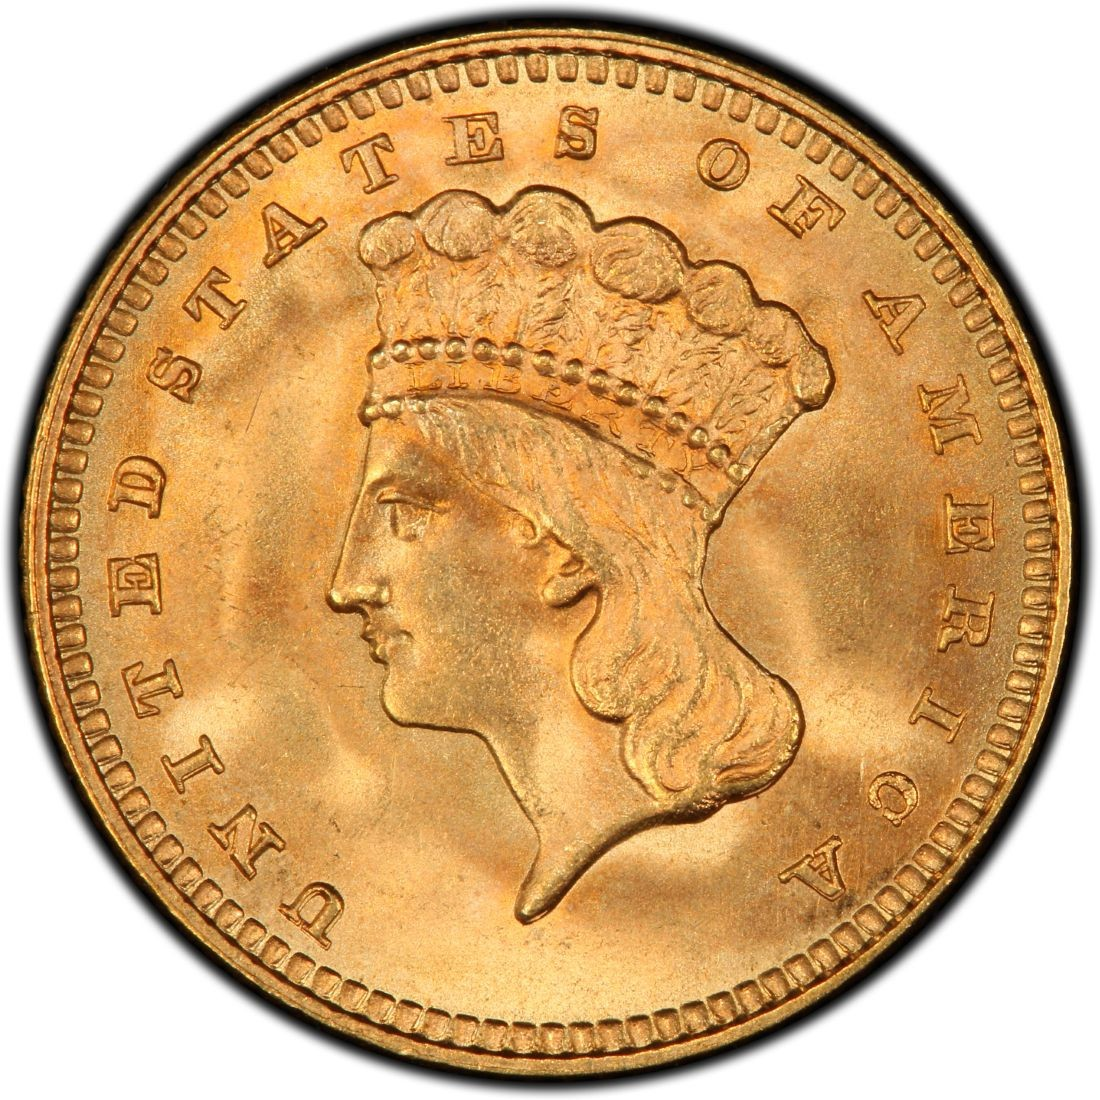 1862 Large Head Indian Princess Gold Dollar Values And